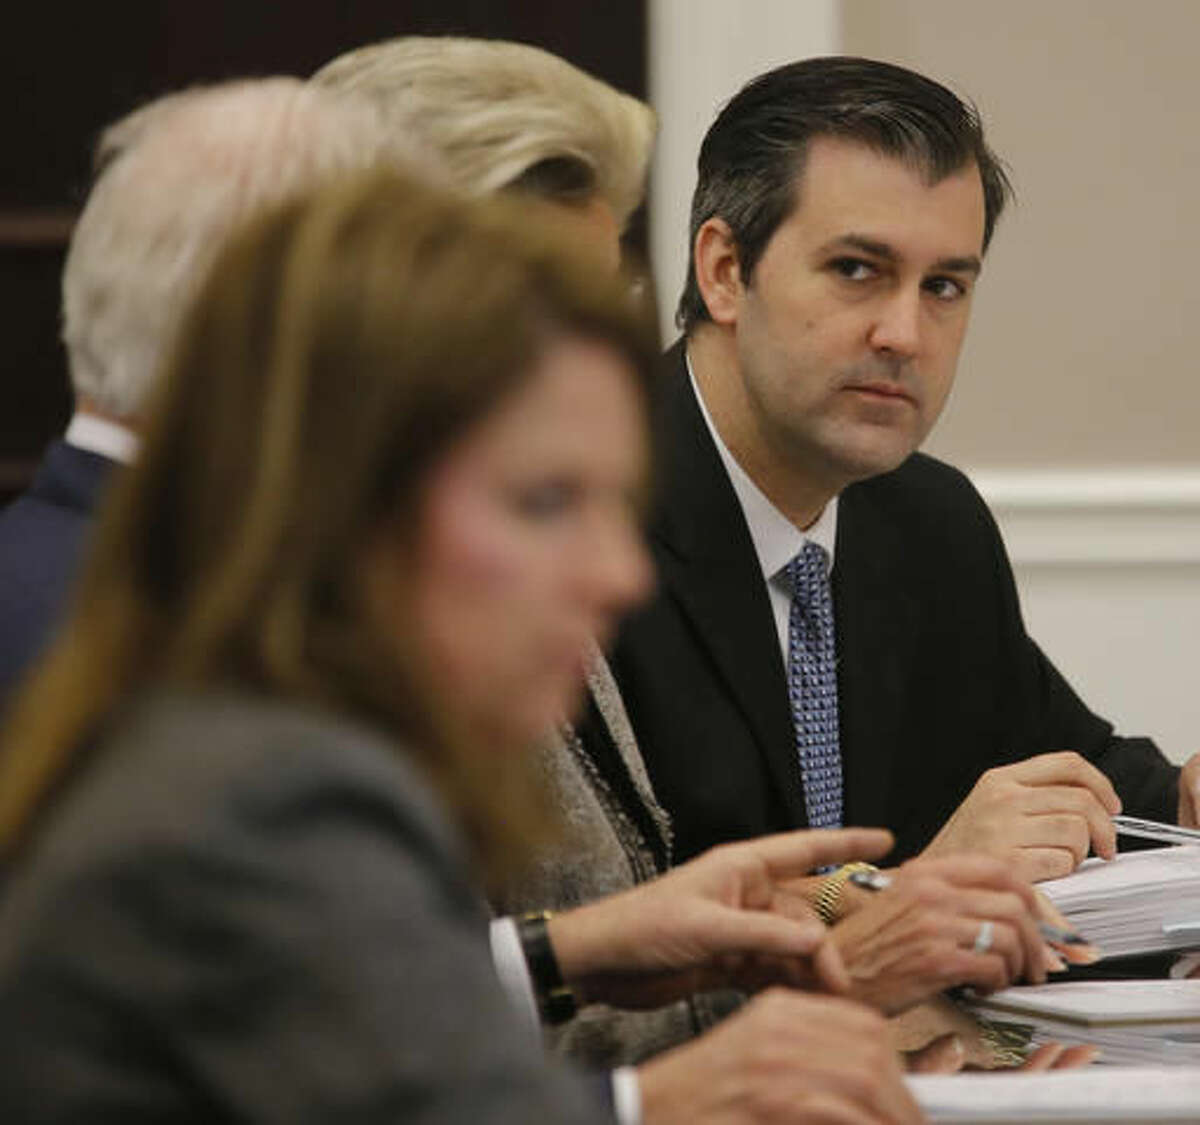 Former North Charleston Police Officer Michael Slager sits at the defense table during testimony in Slager's murder trial, Tuesday, Nov. 8, 2016, in Charleston, S.C. Slager is on trial facing a murder charge in the shooting death of Walter Scott, who was gunned down after he fled from a traffic stop. (Grace Beahm/Post and Courier via AP, Pool, File)